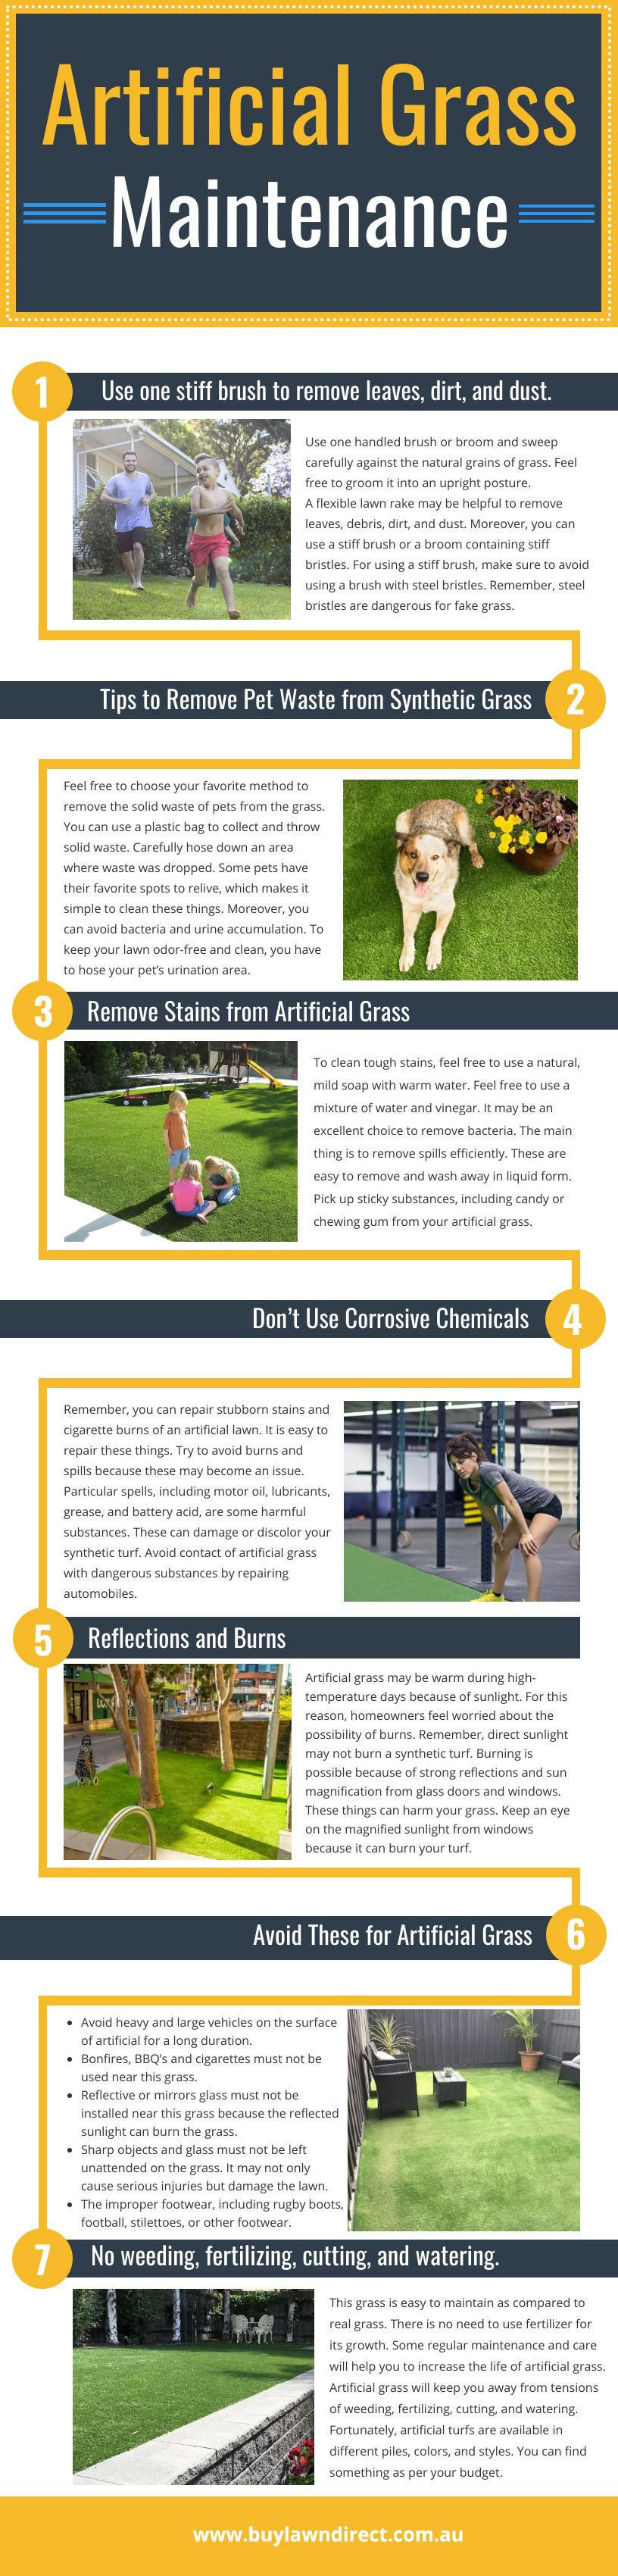 artificial-grass-maintenance-kdb80o0t